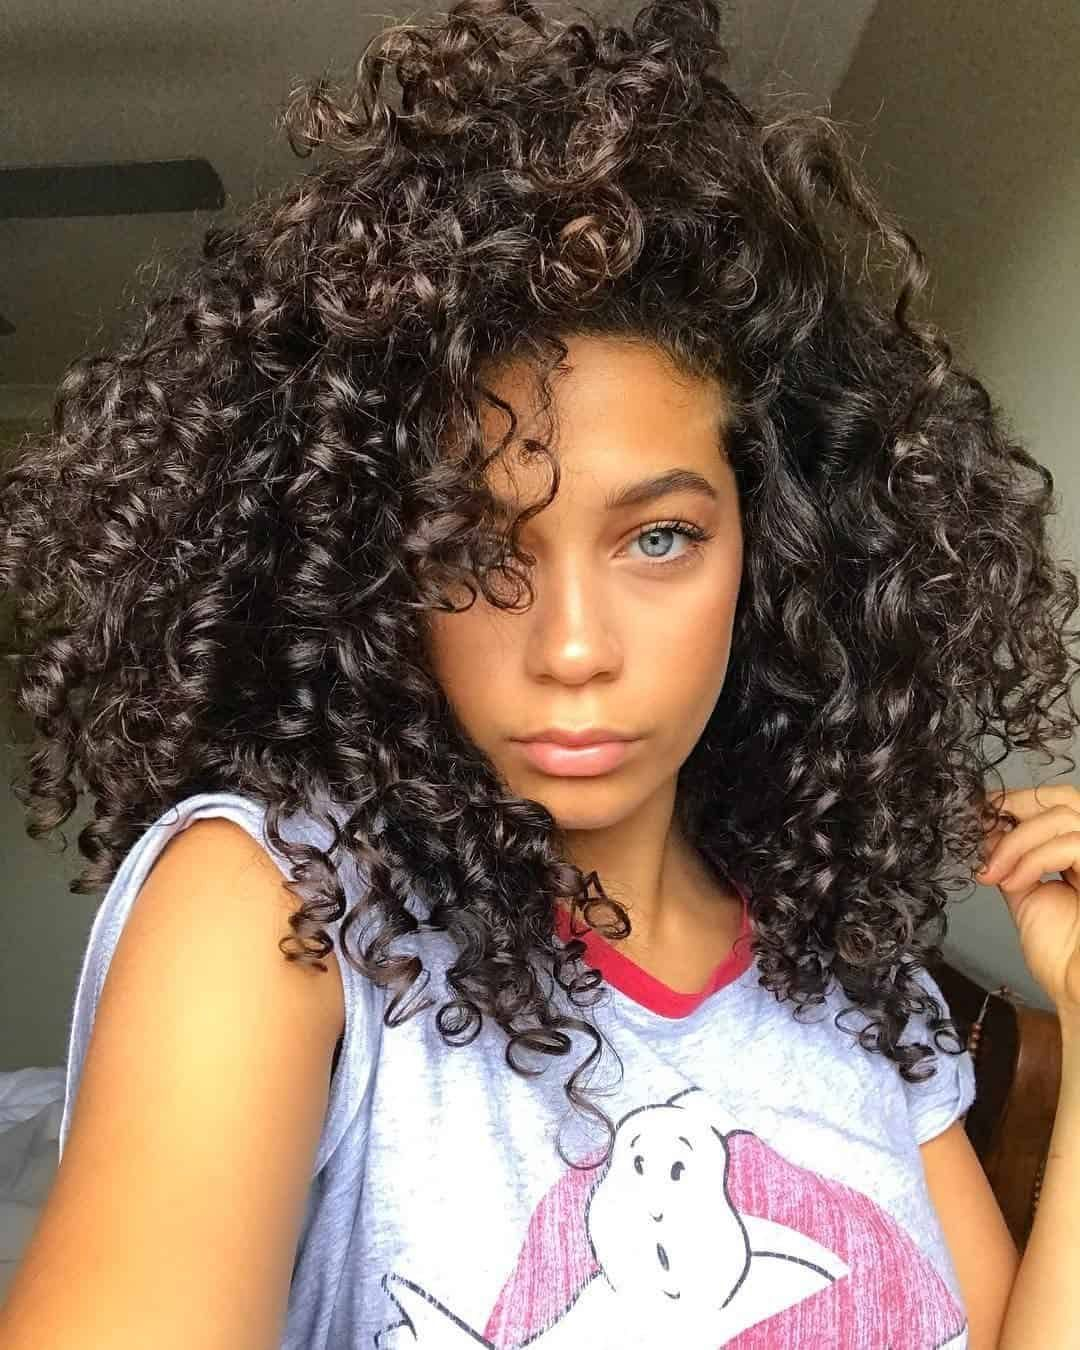 40 Different Ways To Style Your Natural Hair At Home Thrivenaija Natural Hair Styles Beautiful Curly Hair Diva Curl